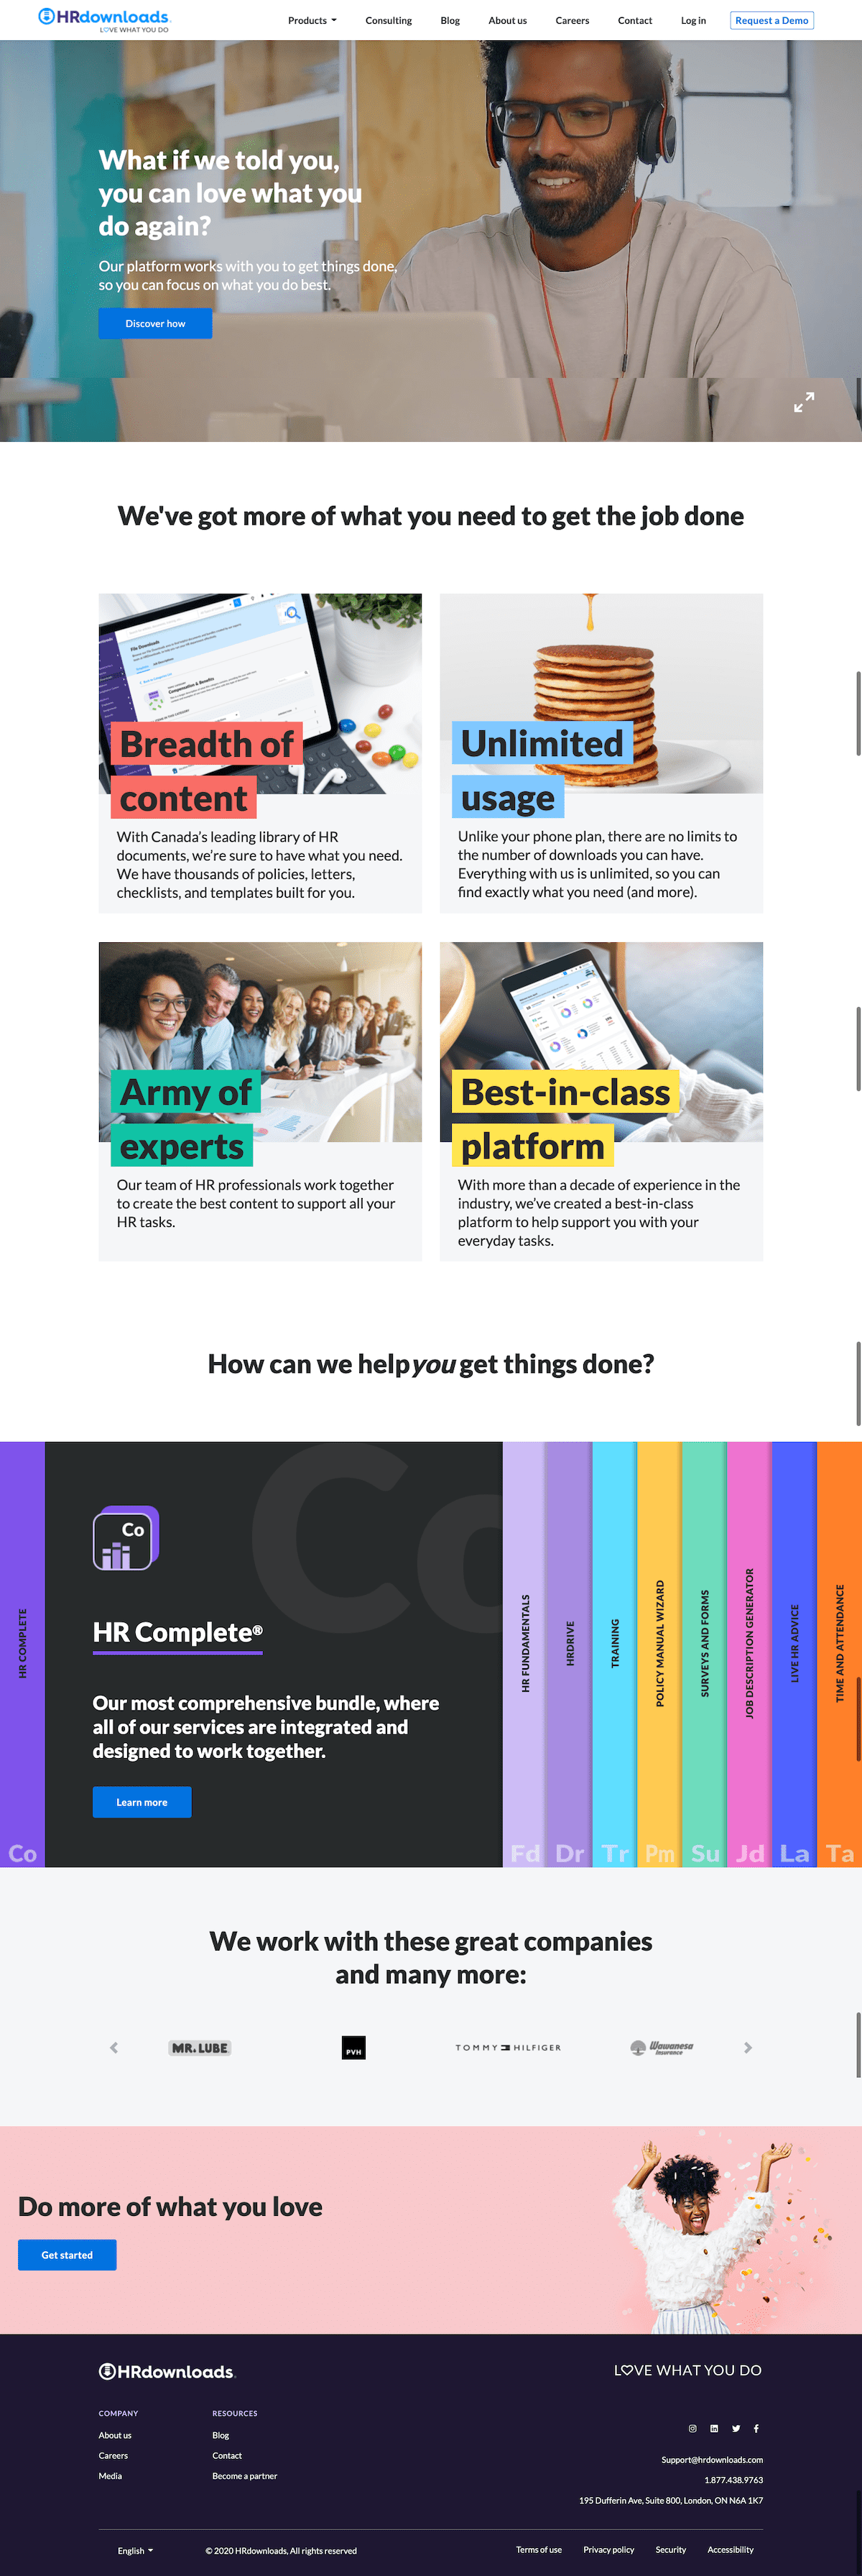 HR Downloads Video Landing Page Example